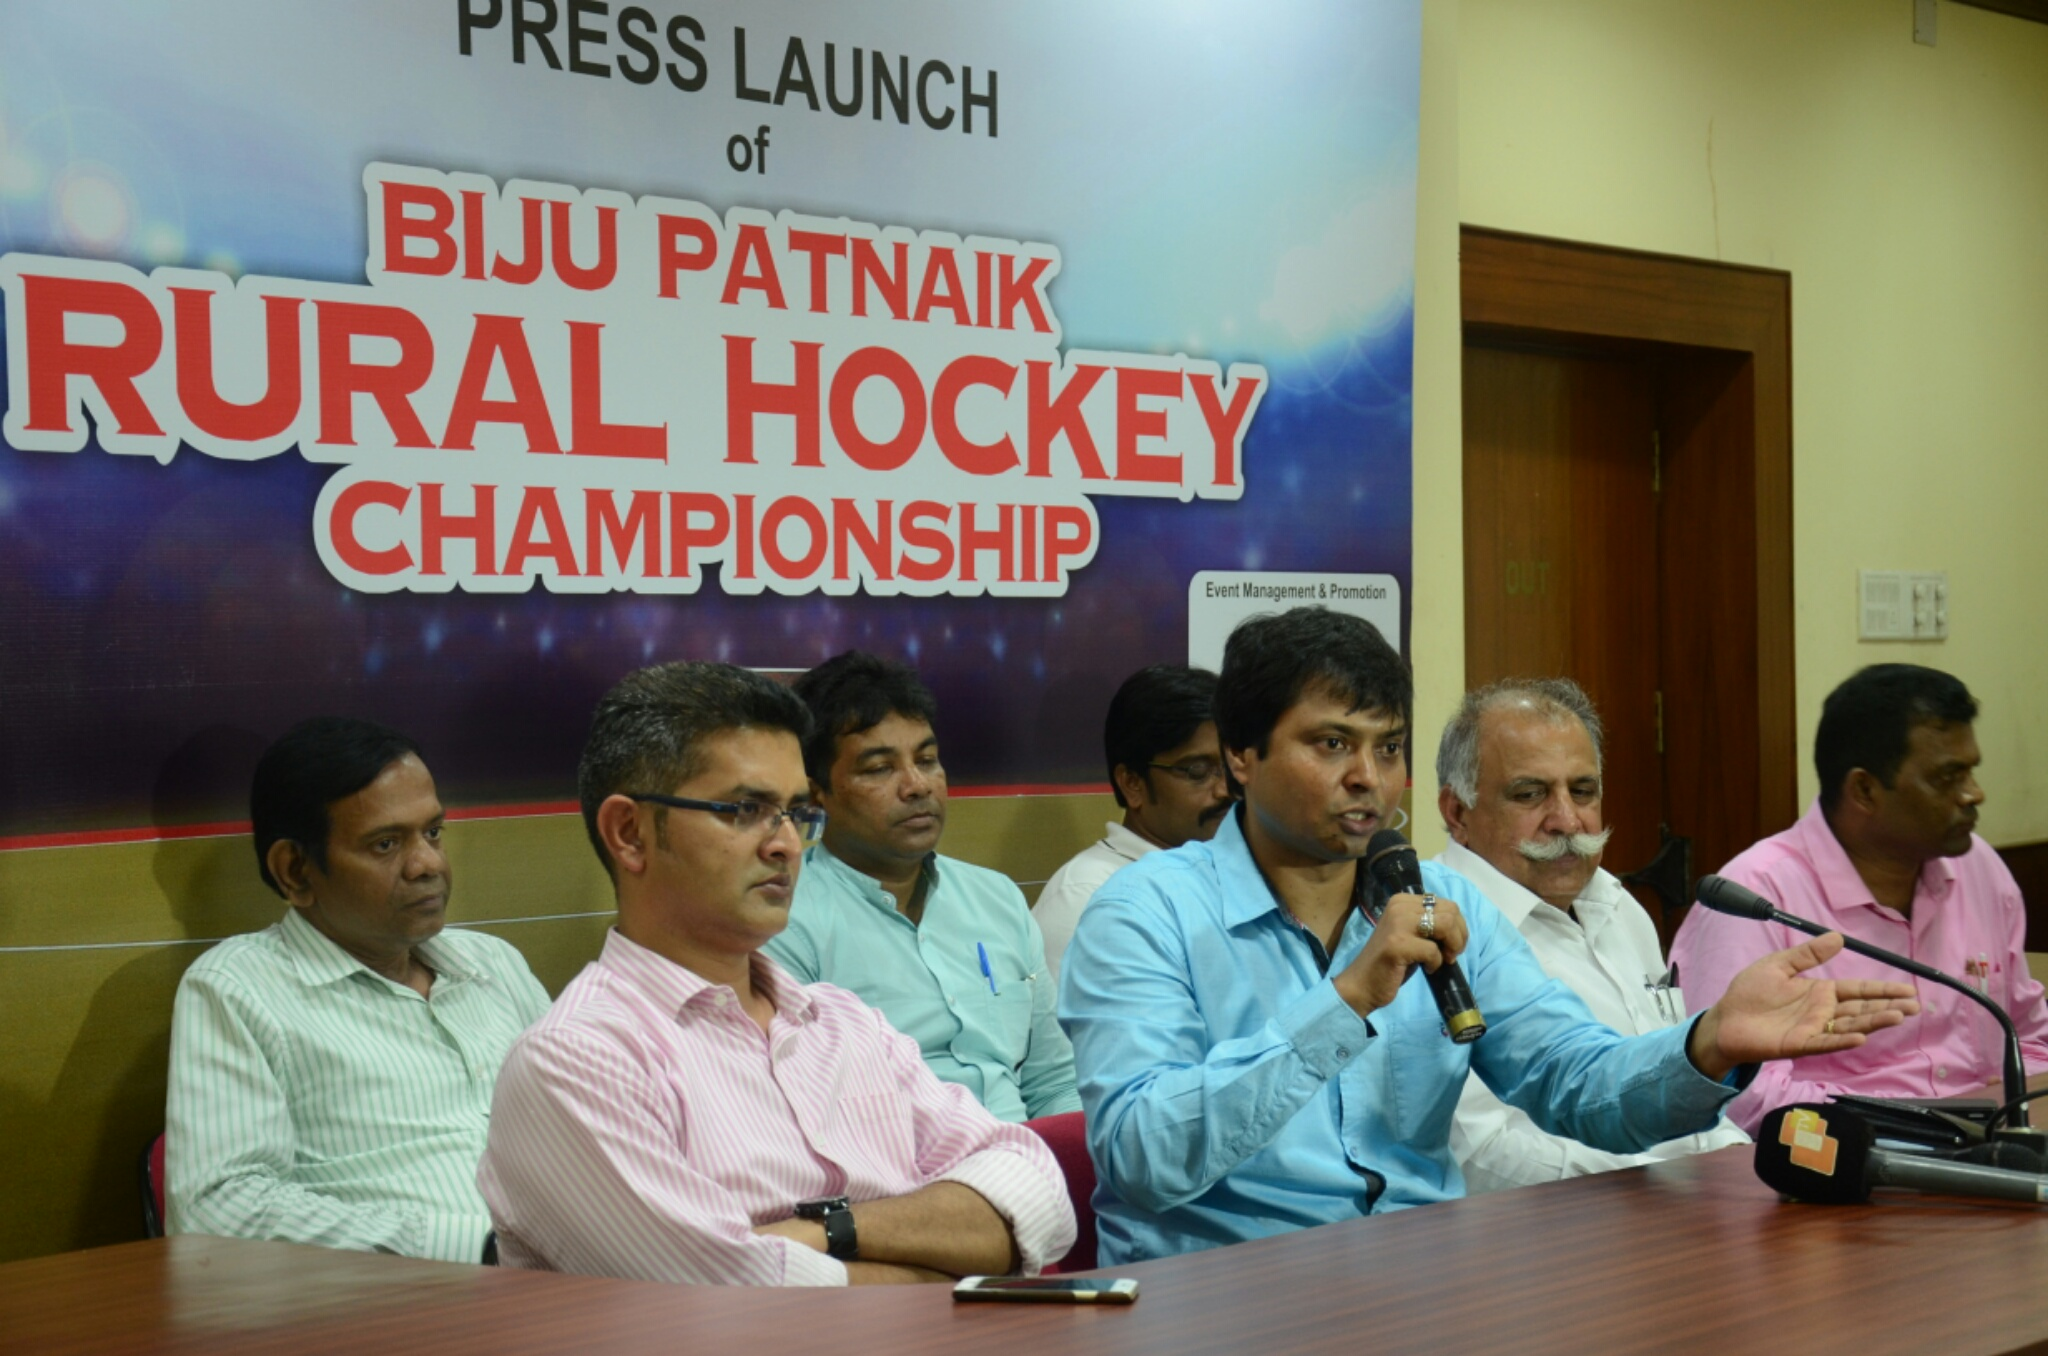 biju-patnaik-hockey-tournament